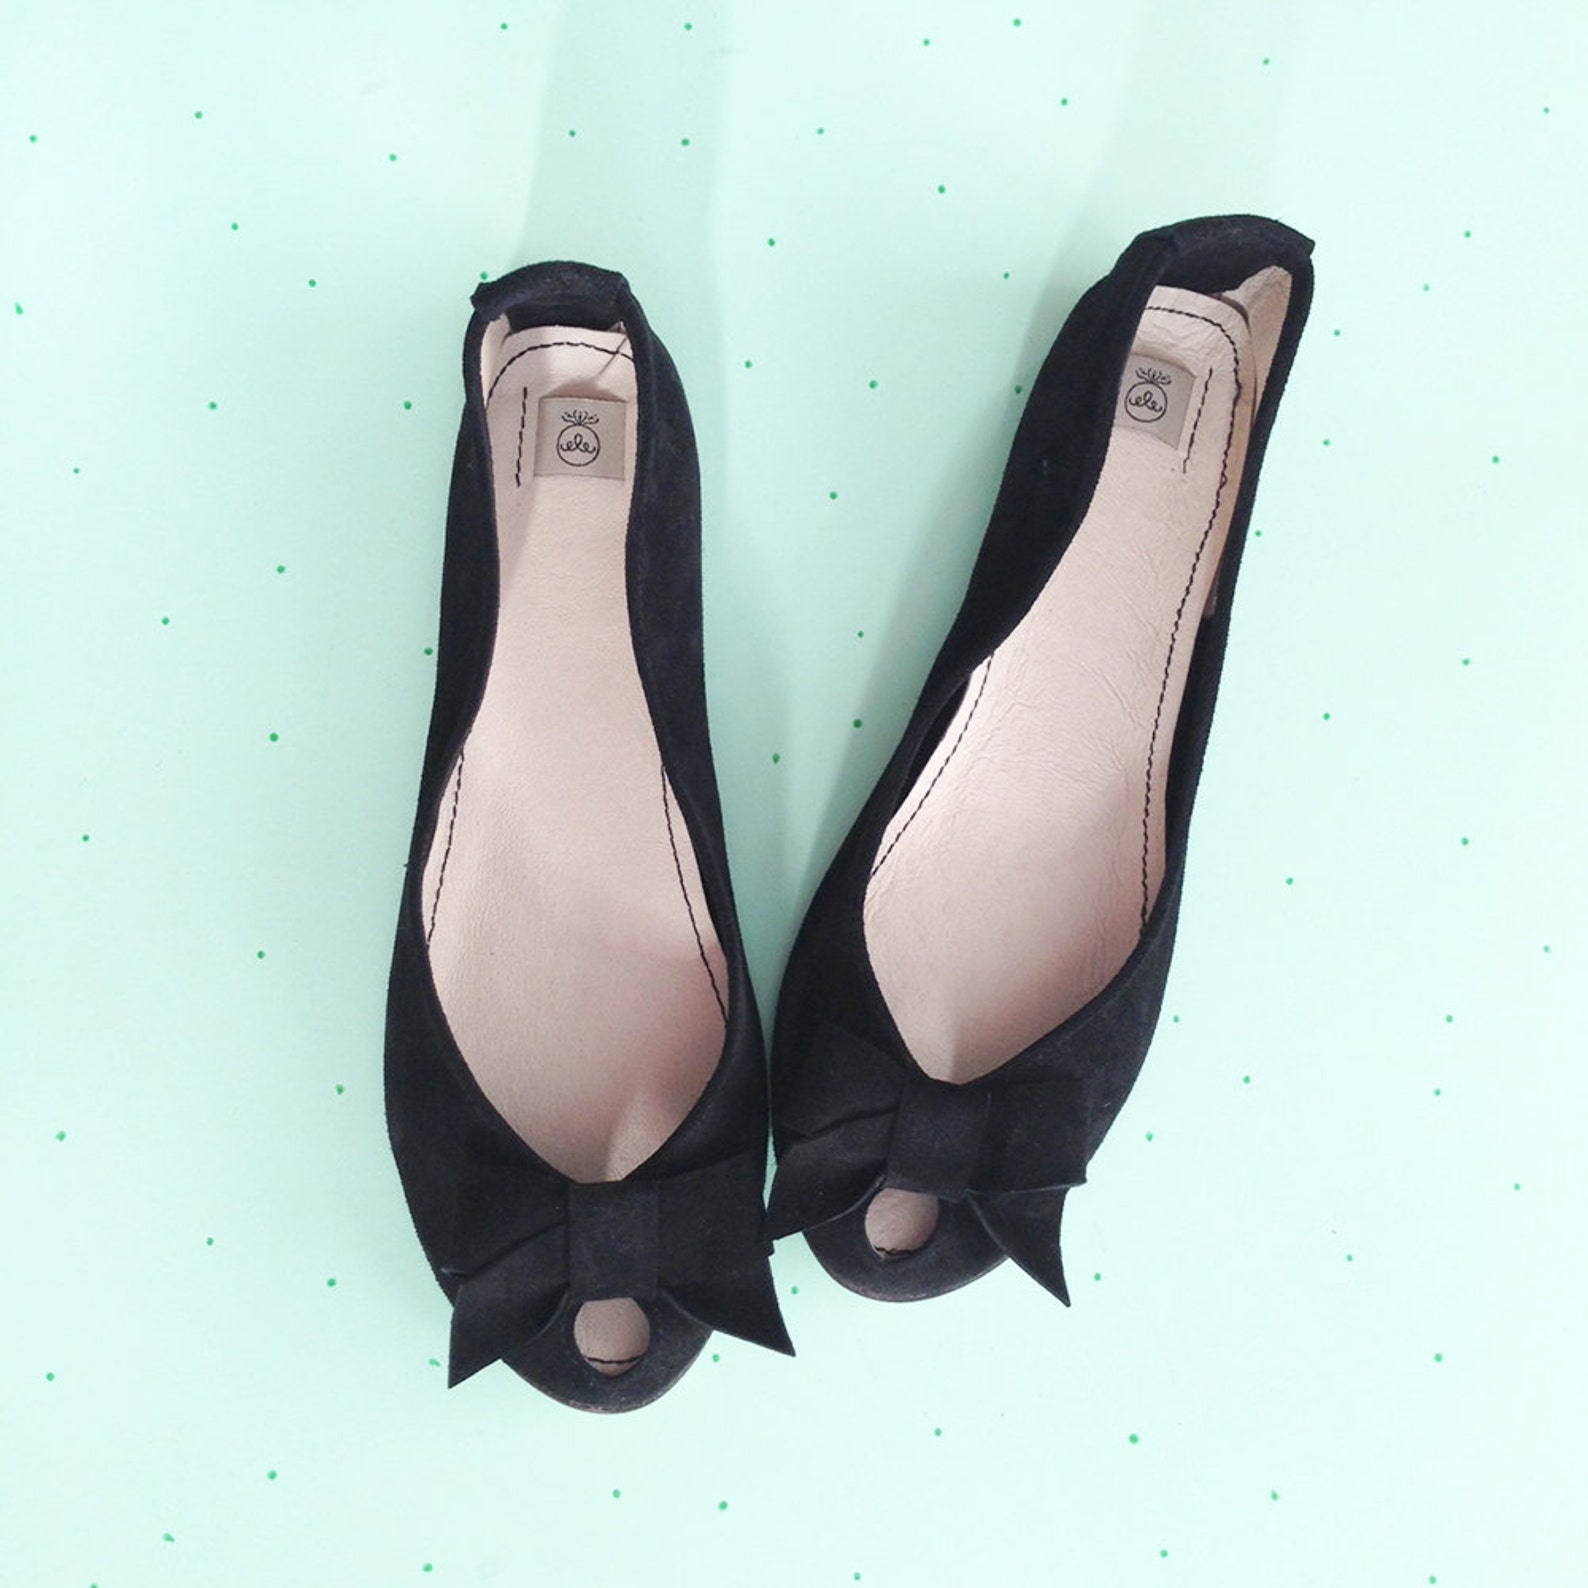 ballet flats shoes. women shoes. black shoes. leather shoes. handmade peep toe. open toes flats. black ballet flats with bow. bl